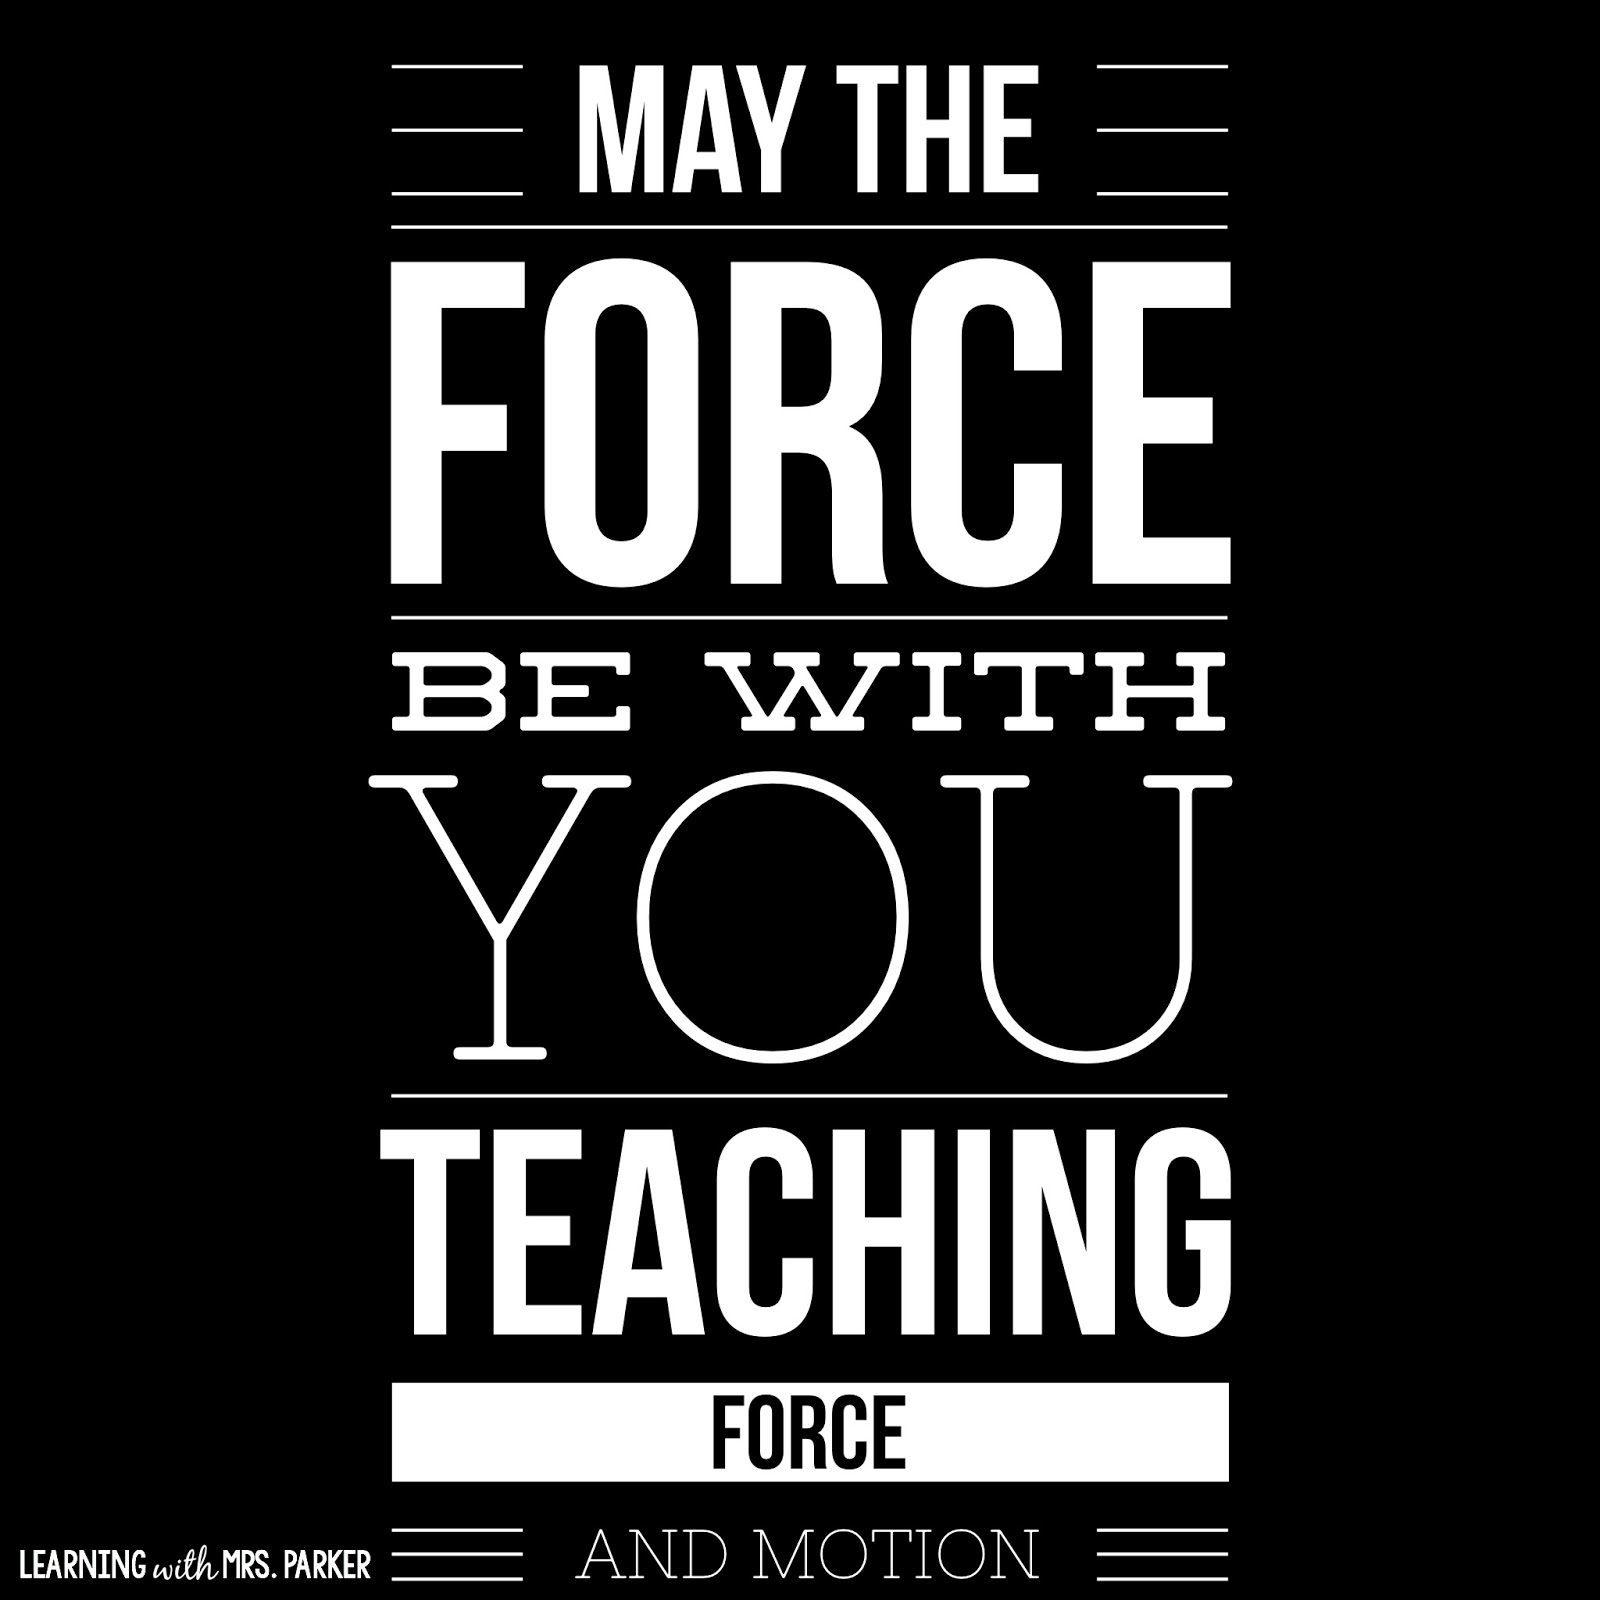 May The Force Be With You: Teaching Force And Motion